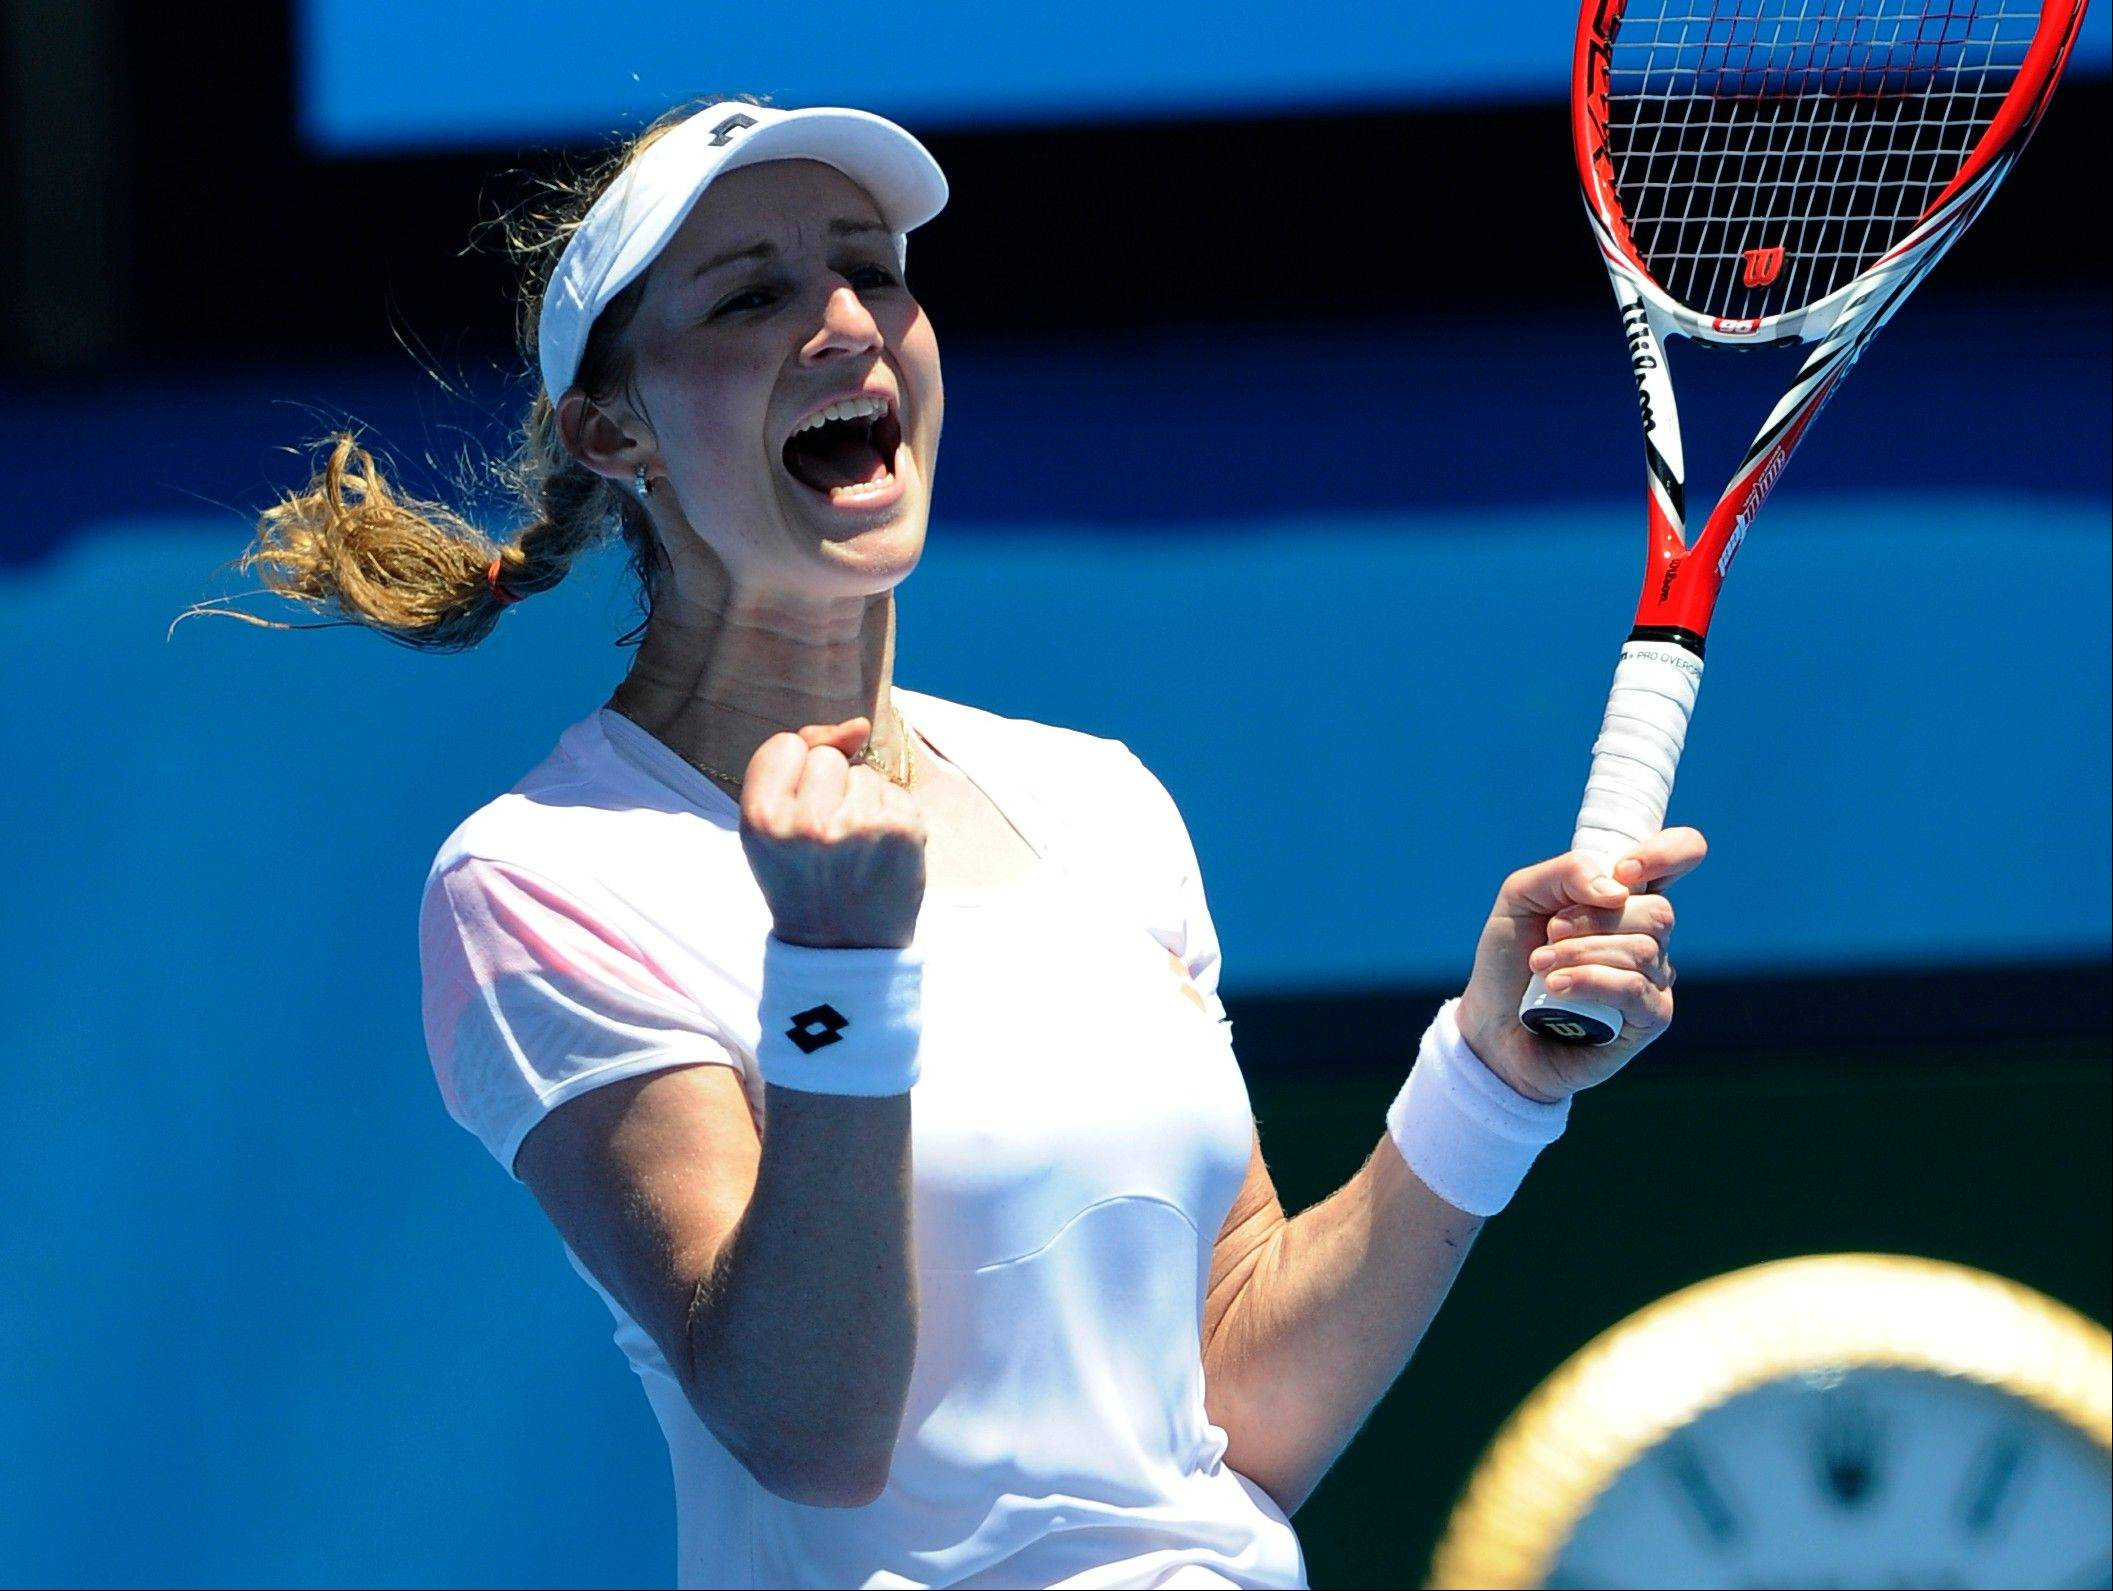 Ekaterina Makarova of Russia celebrates her win over Venus Williams of the U.S. during their first round match at the Australian Open tennis championship in Melbourne, Australia, Monday, Jan. 13, 2014.